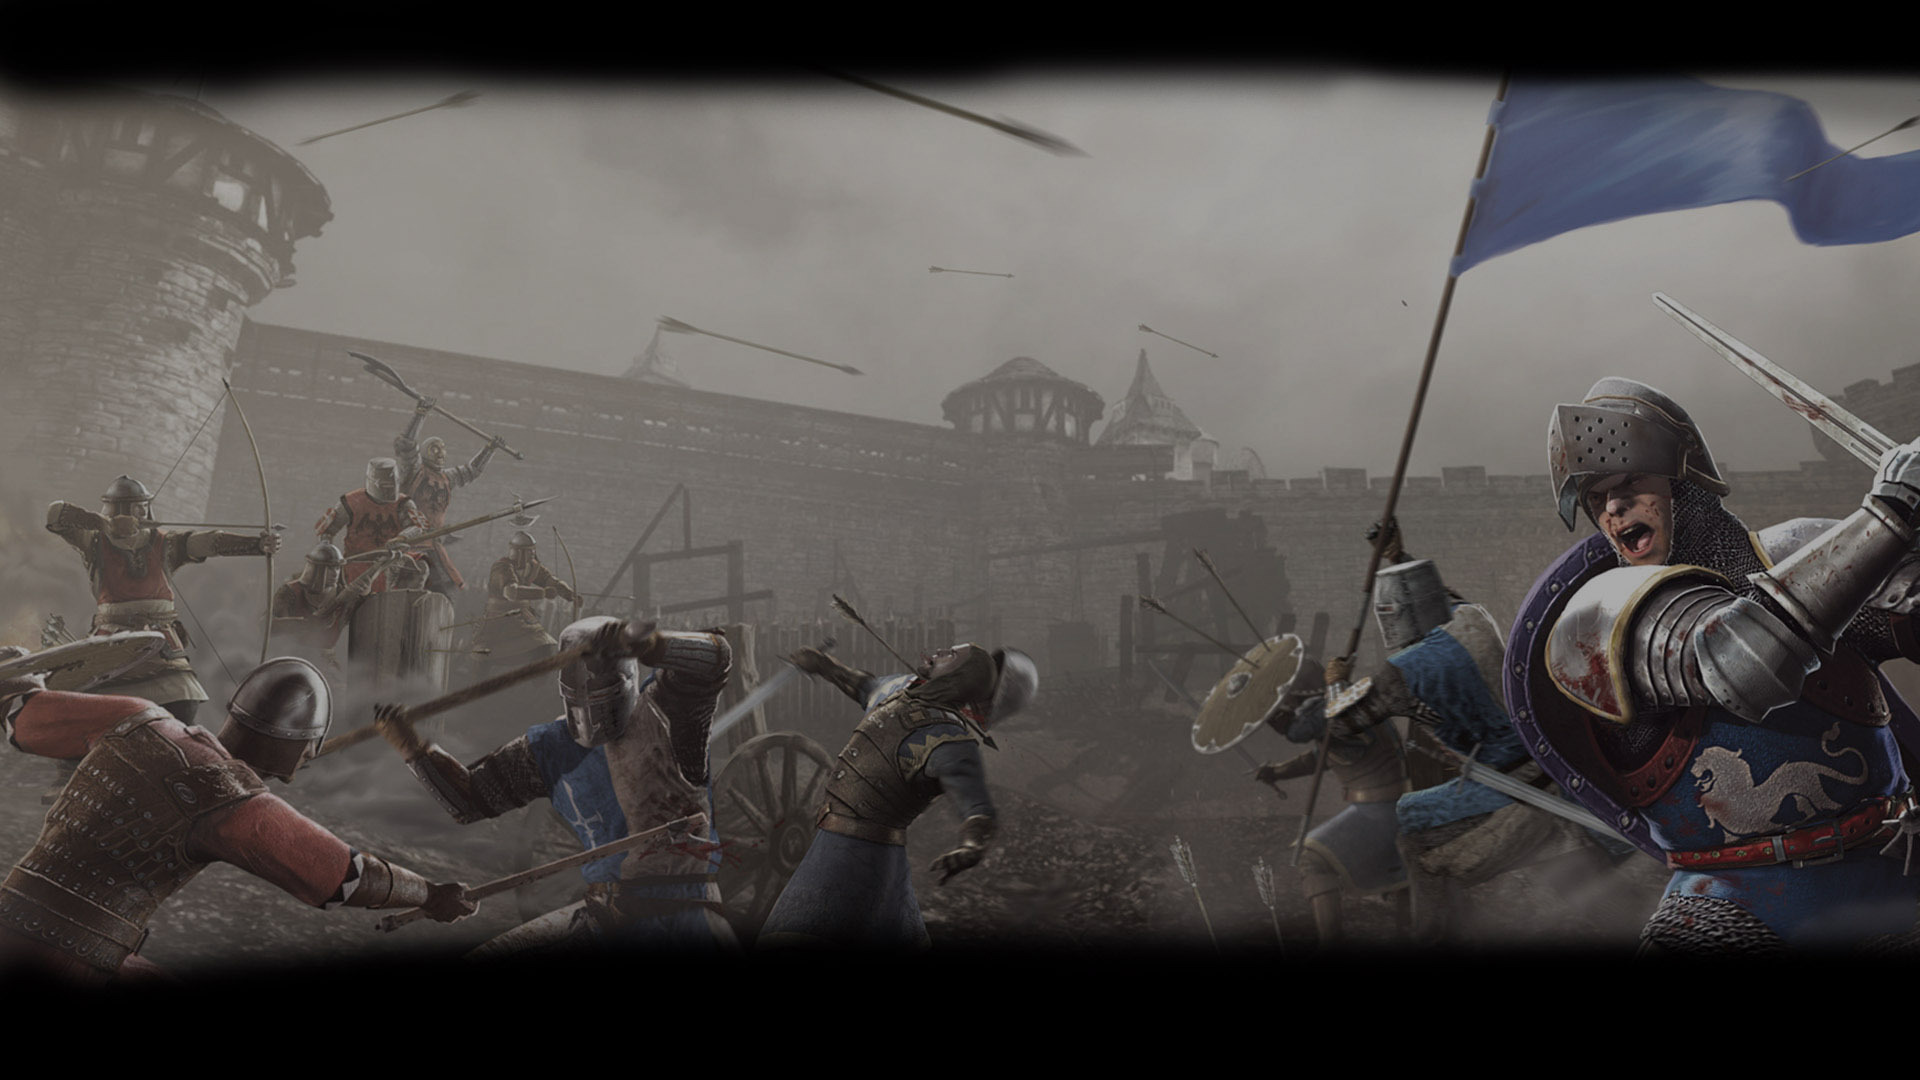 Chivalry Medieval Warfare Steam Cards images